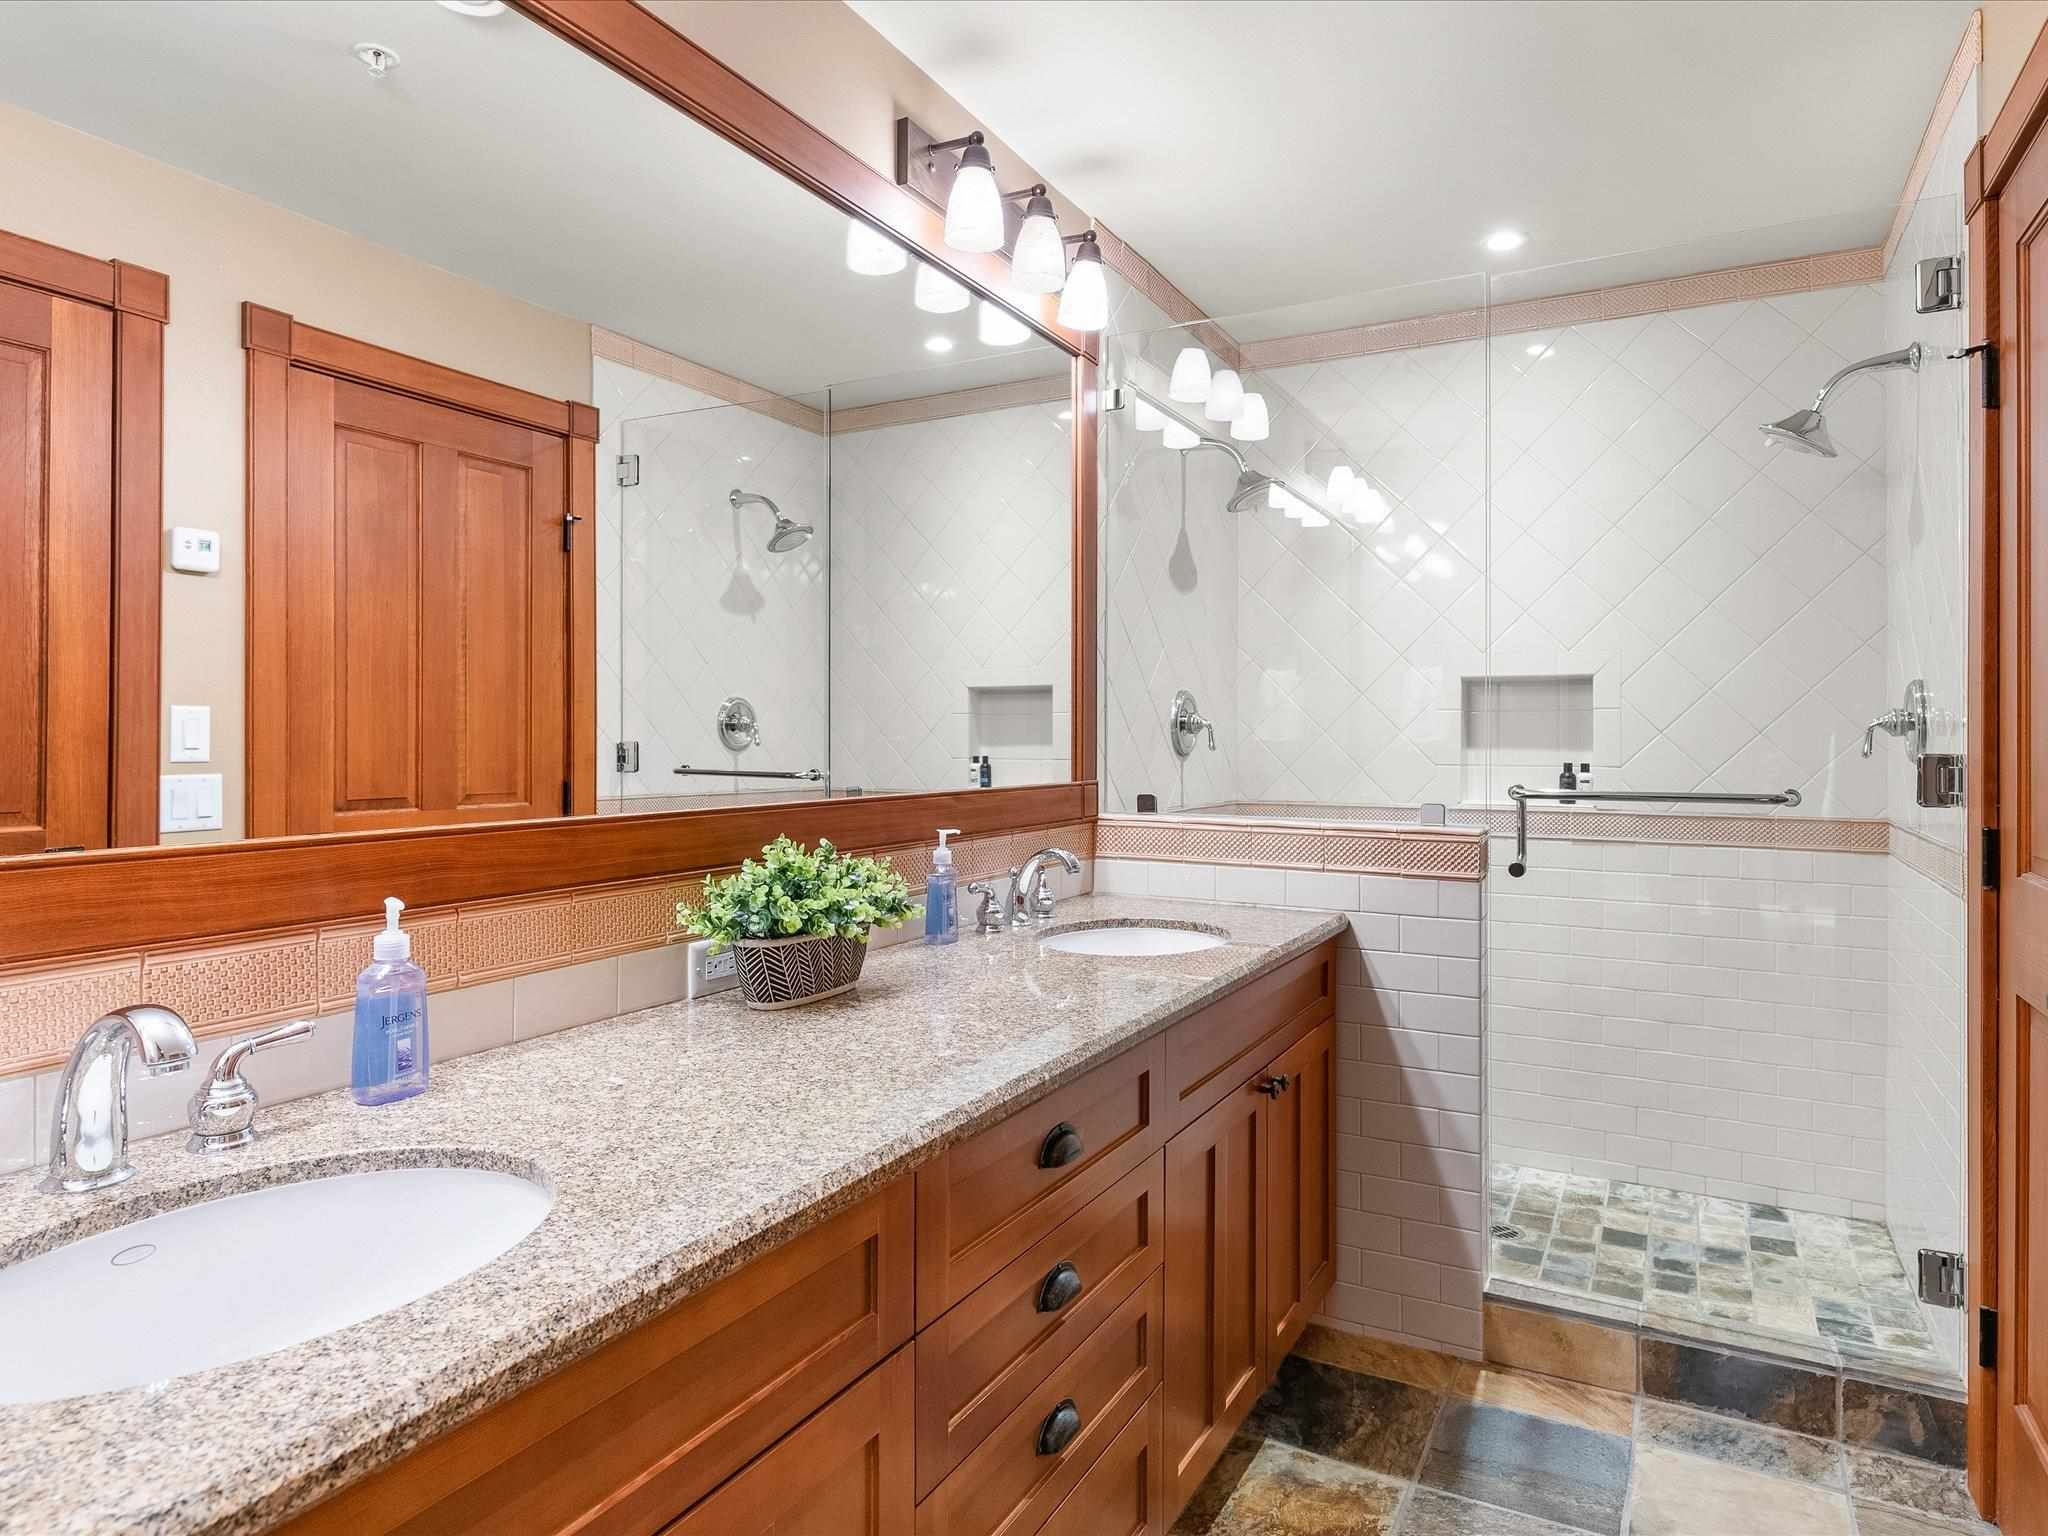 Photo 17: Photos: 4 2500 TALUSWOOD PLACE in Whistler: Nordic Townhouse for sale : MLS®# R2593995